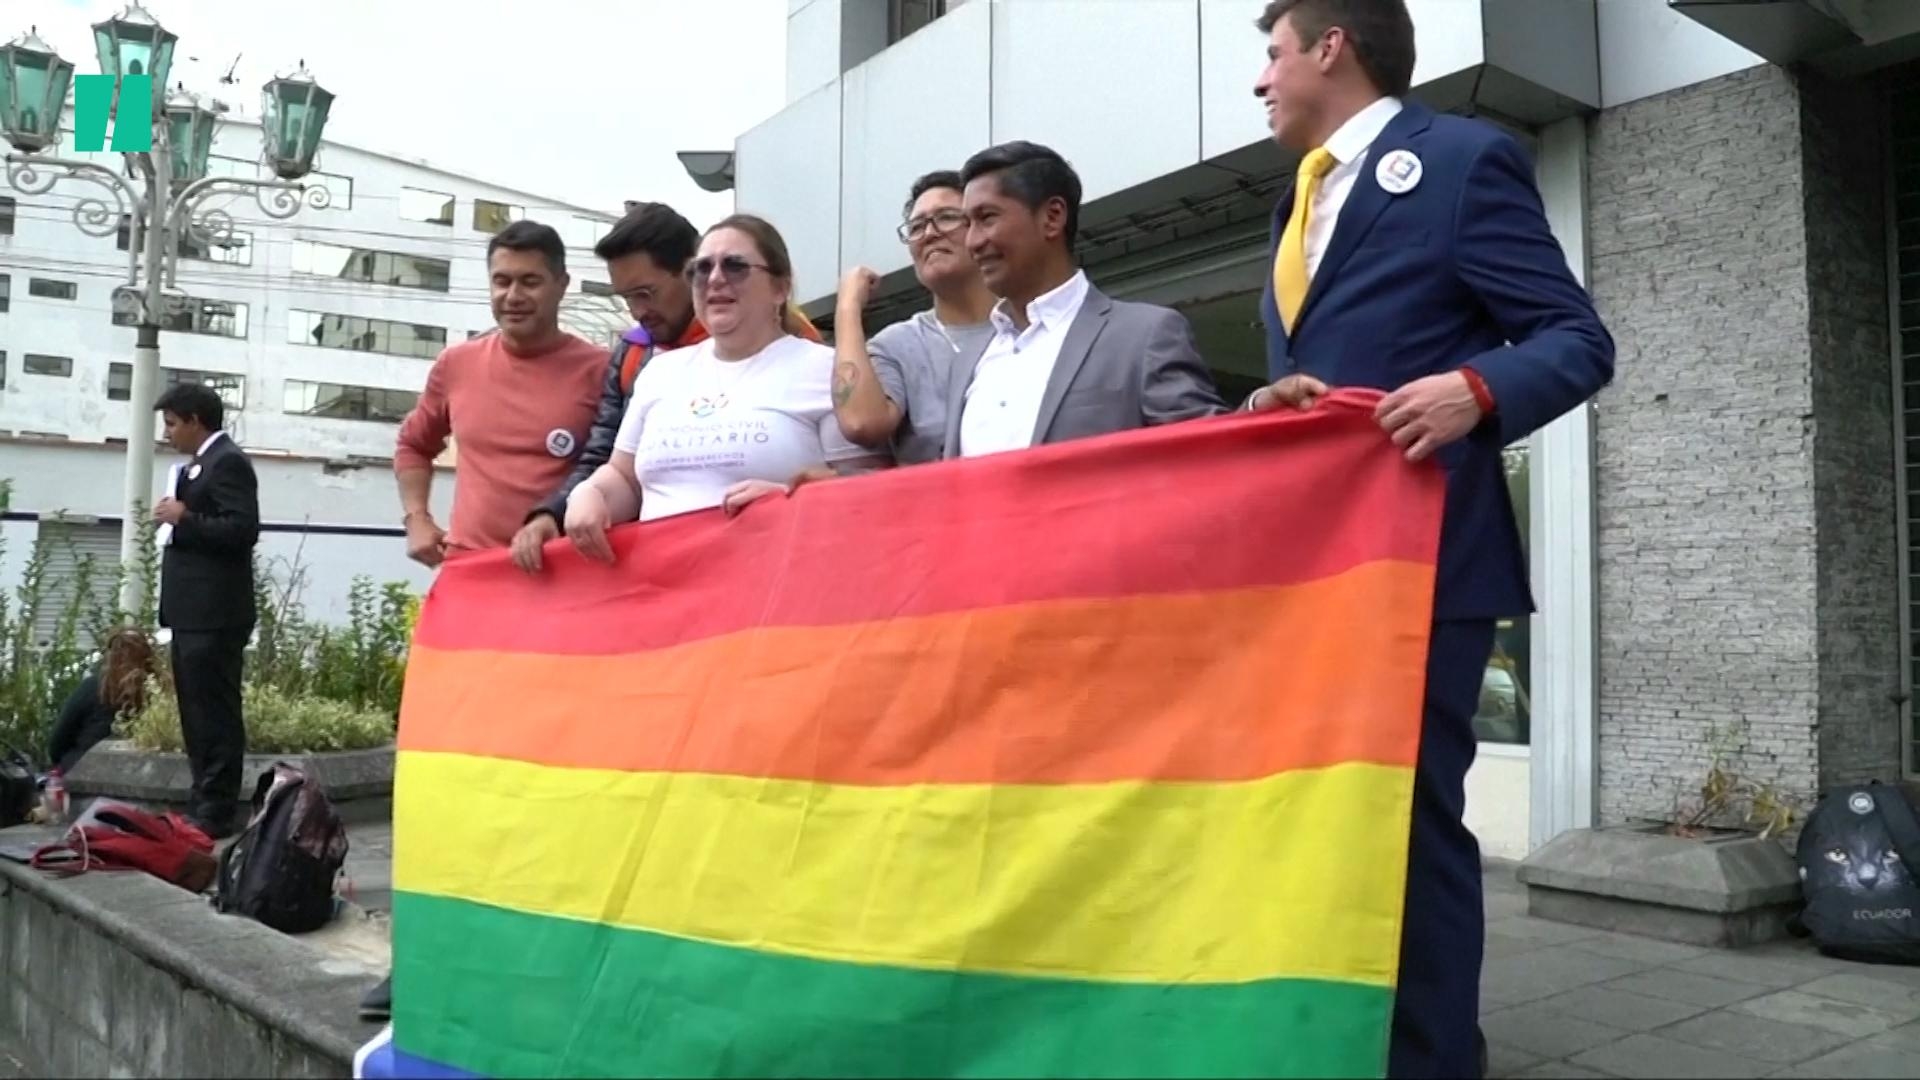 Ecuador Legalizes Same-Sex Marriage In Landmark Week For LGBTQ Rights